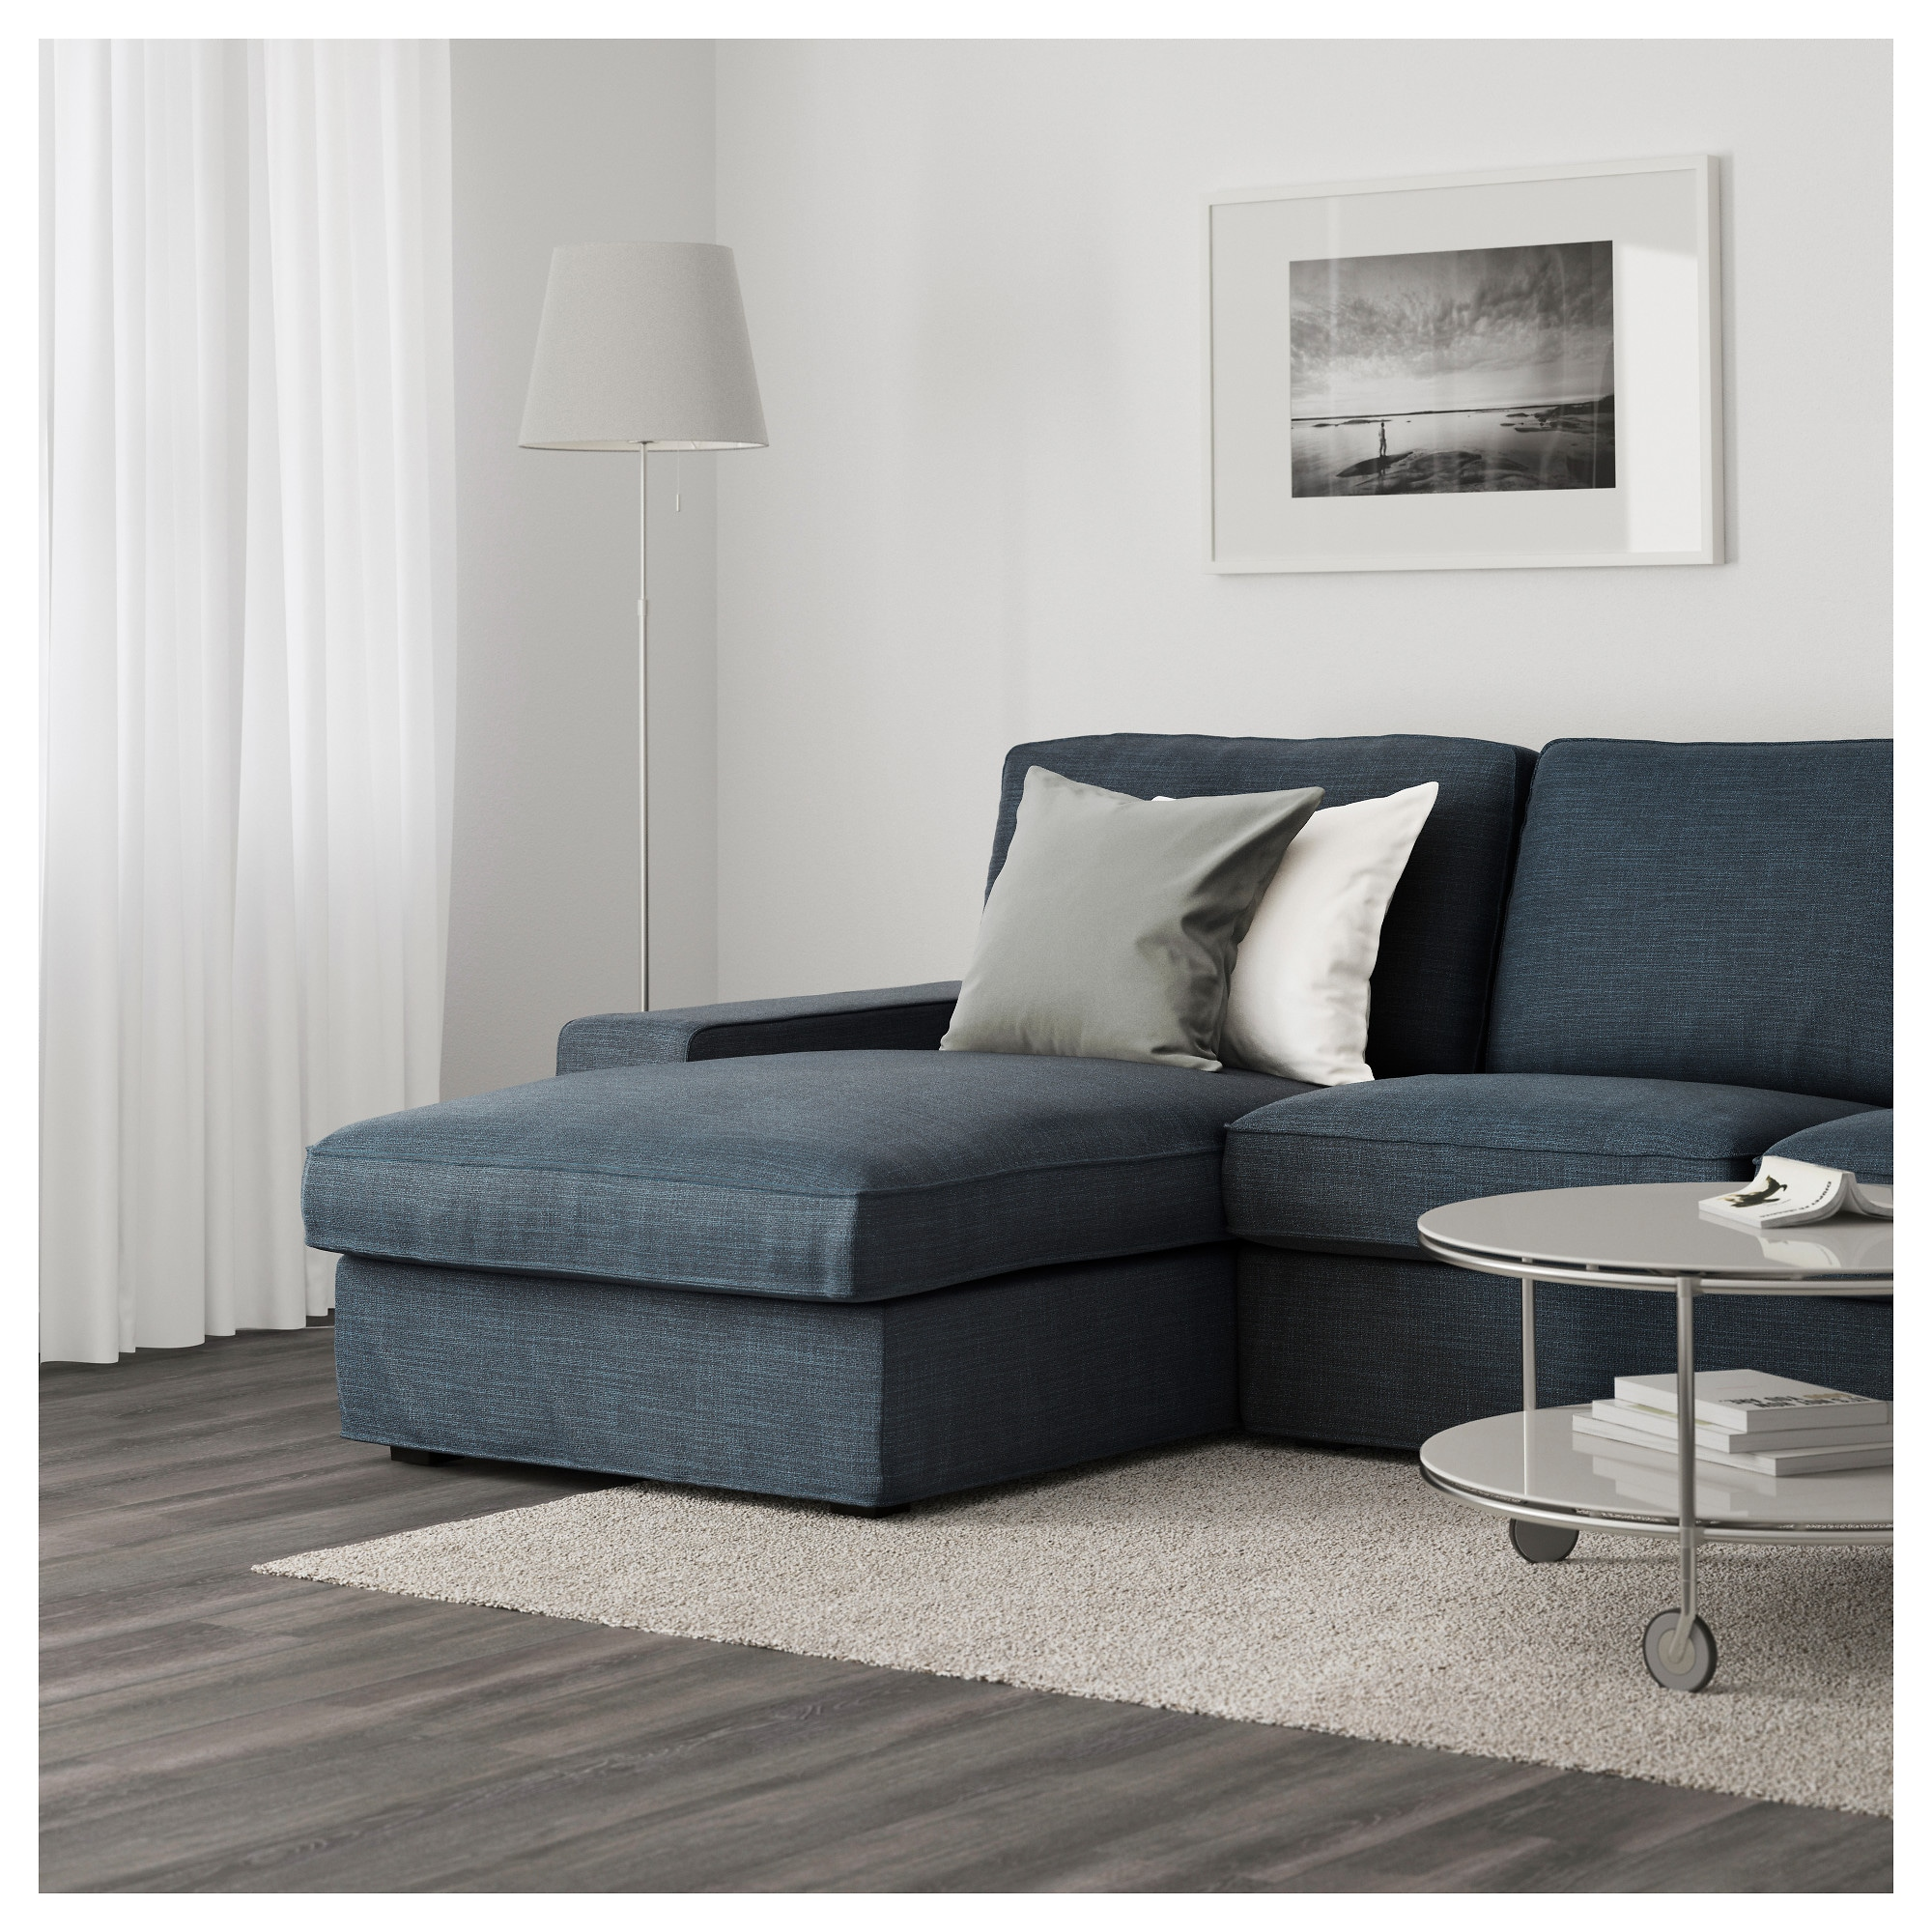 Kivik sofa orrsta light gray ikea parisarafo Gallery